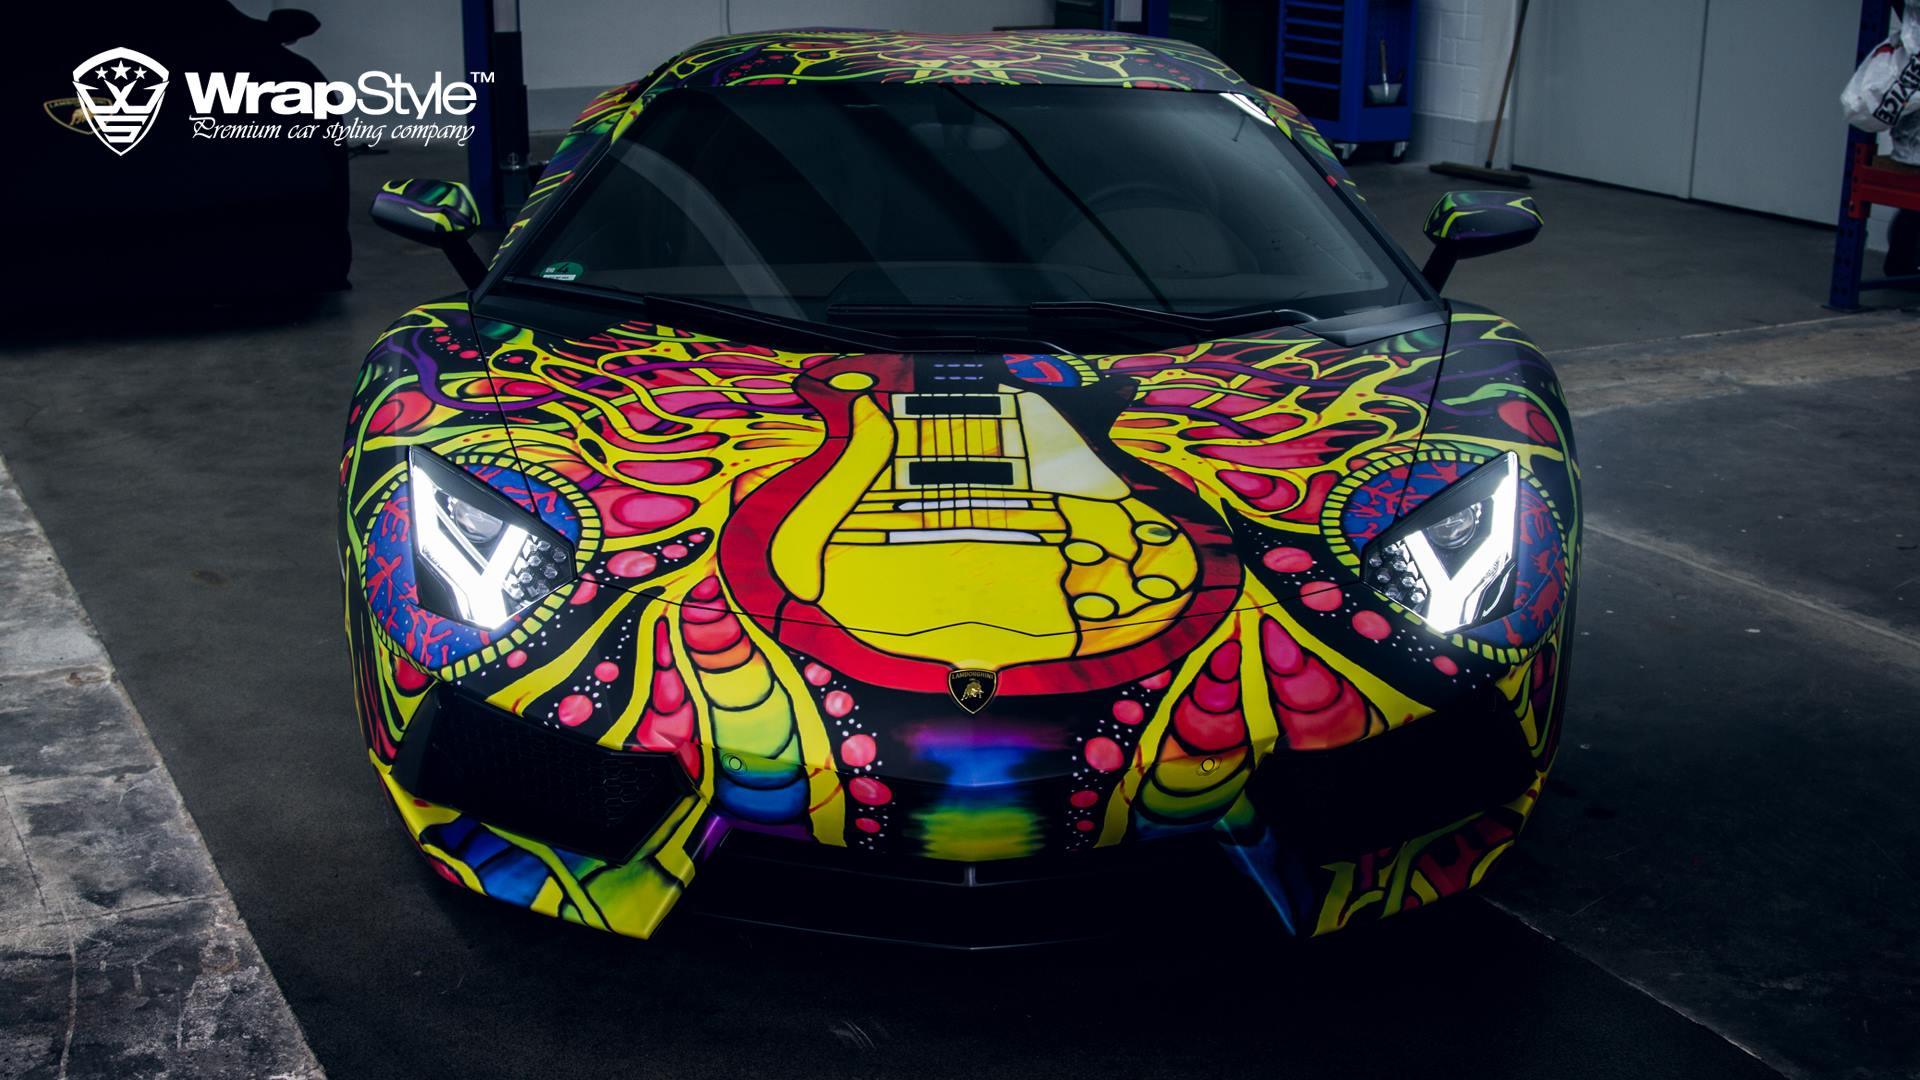 Deadmau5 Car Wallpaper Lamborghini Aventador With Psychedelic Wrap Looks Like An